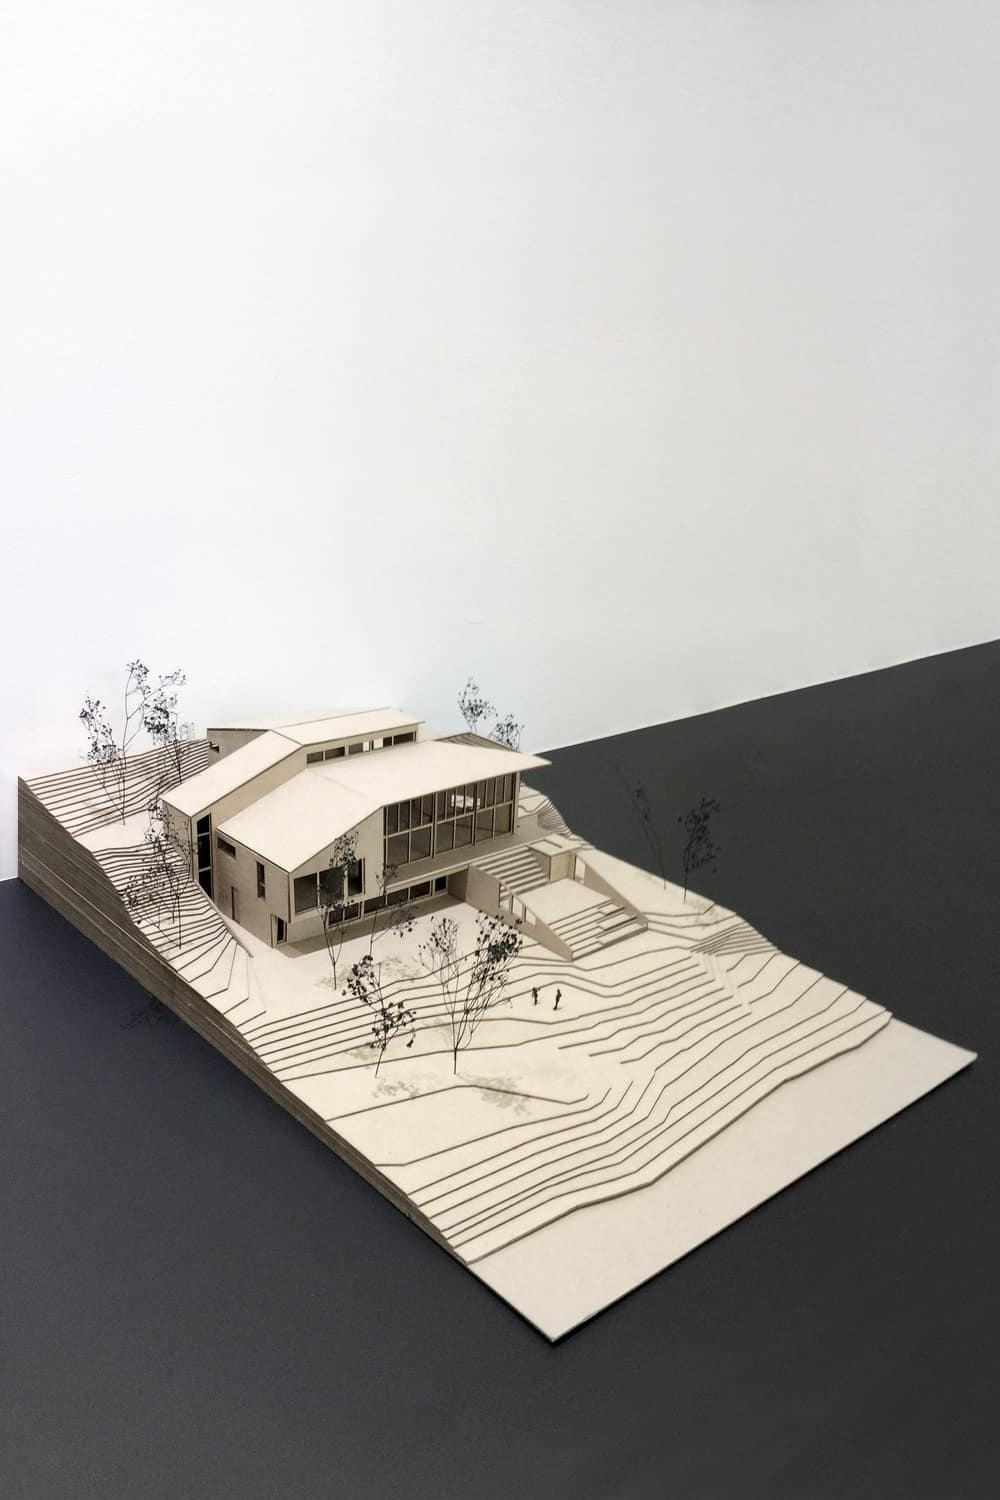 Complete diorama of the house. Photo credit: Bourgeois Lechasseur architects